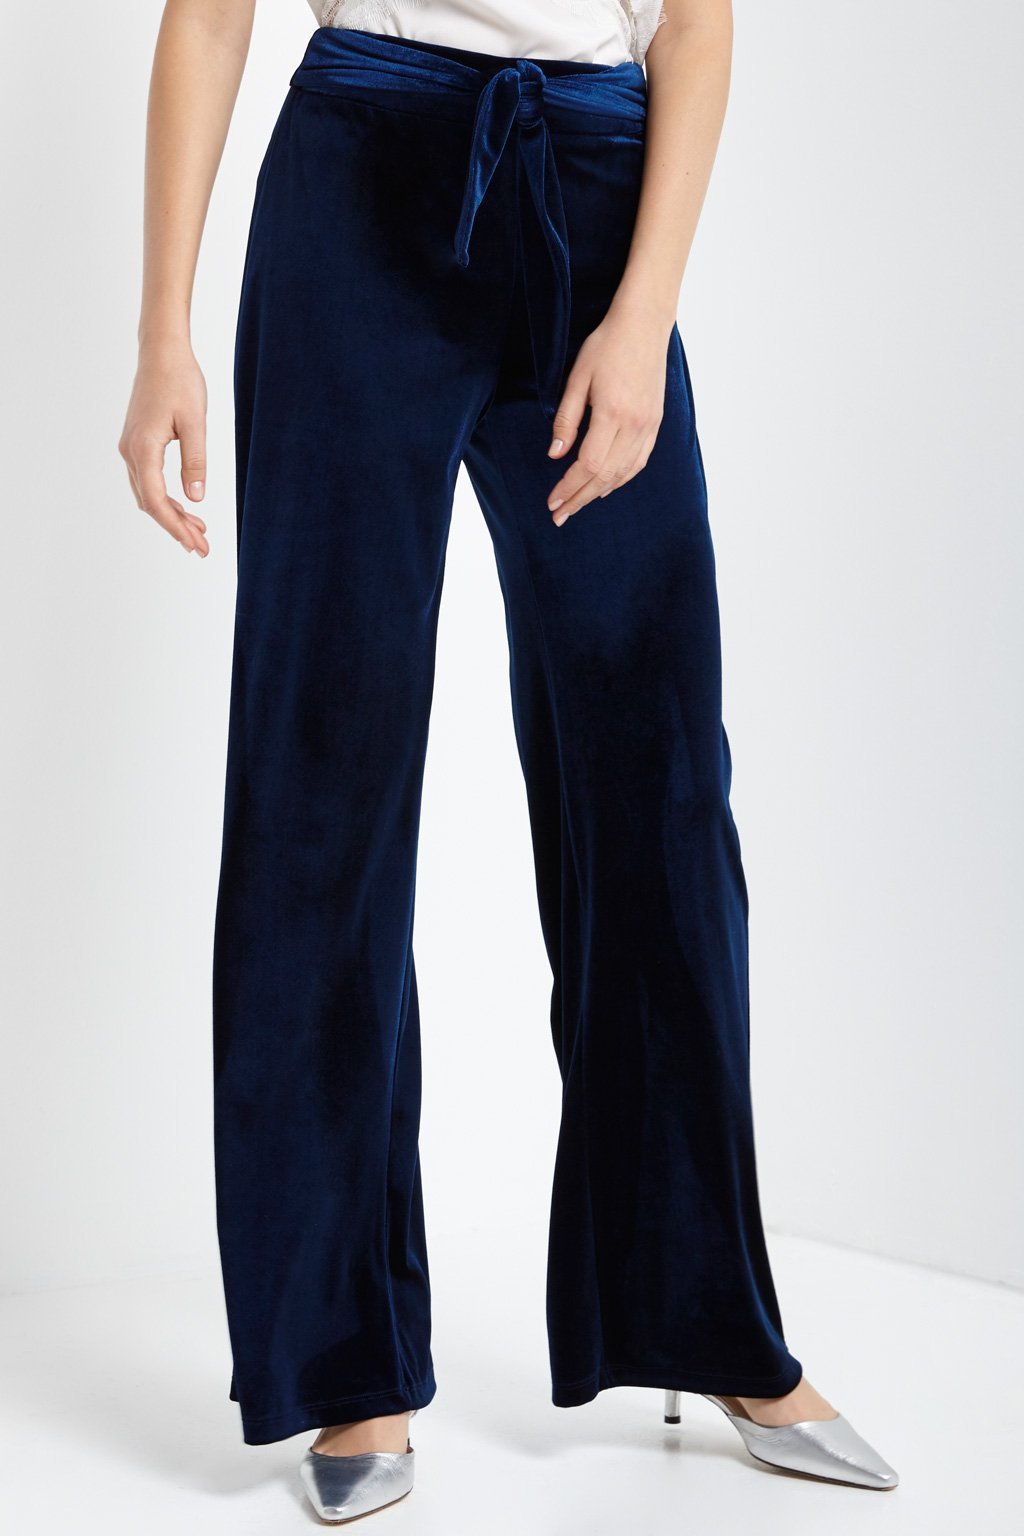 Poshsquare Pants S / Navy Tie Front High Waisted Velvet Pants